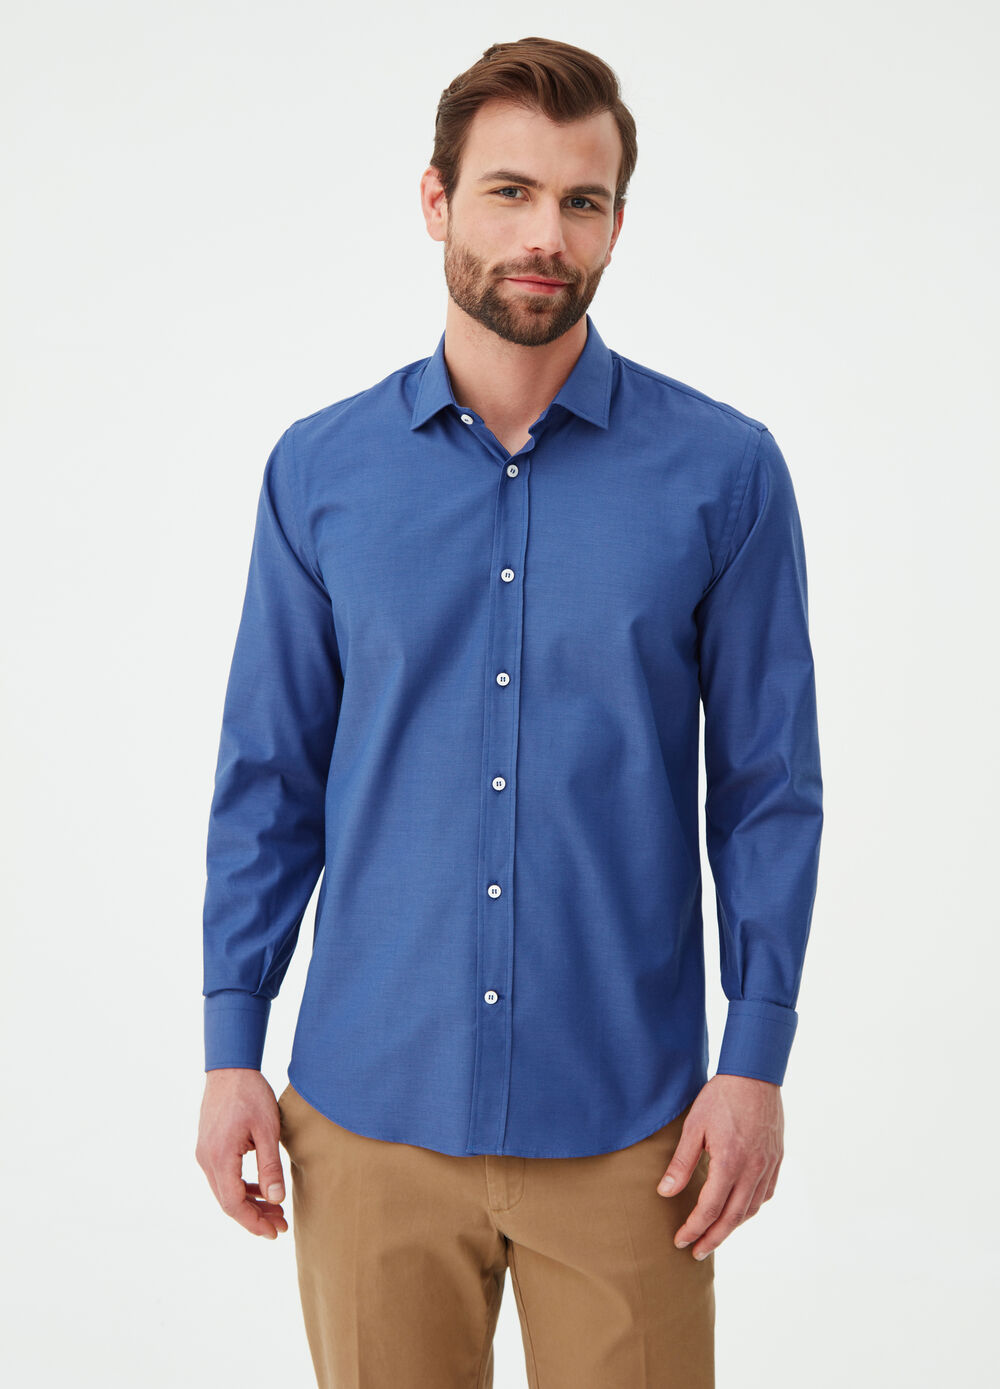 Regular-fit shirt with collar and placket